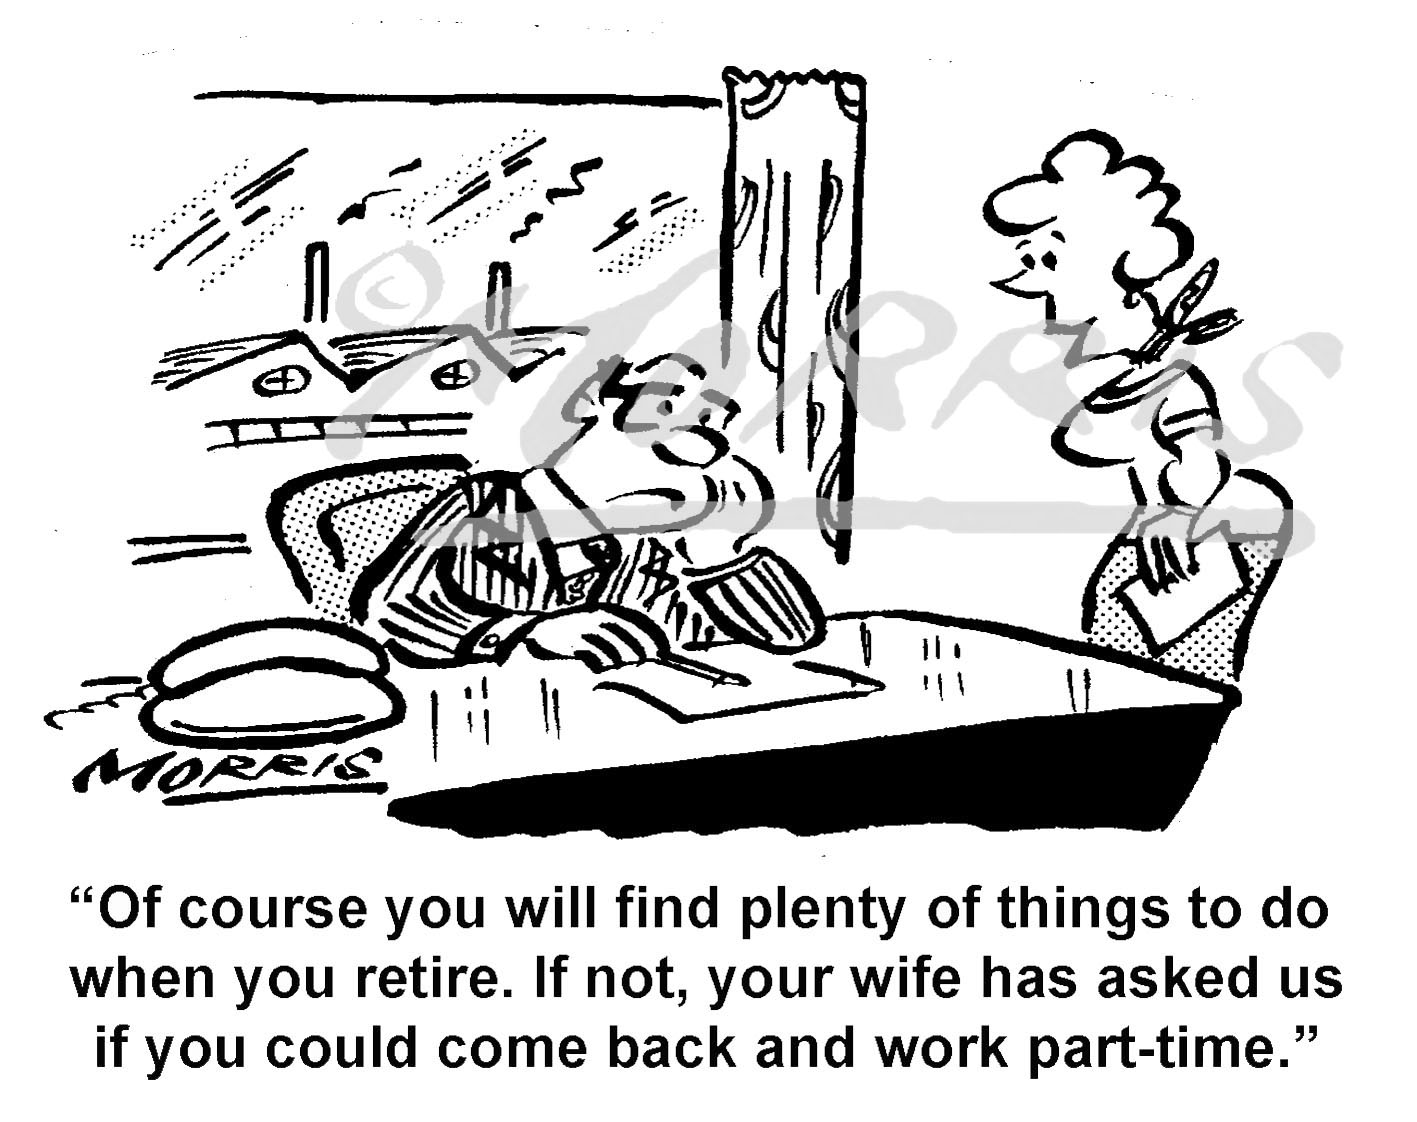 Retirement cartoon, retirerment comic Ref: 8603bw